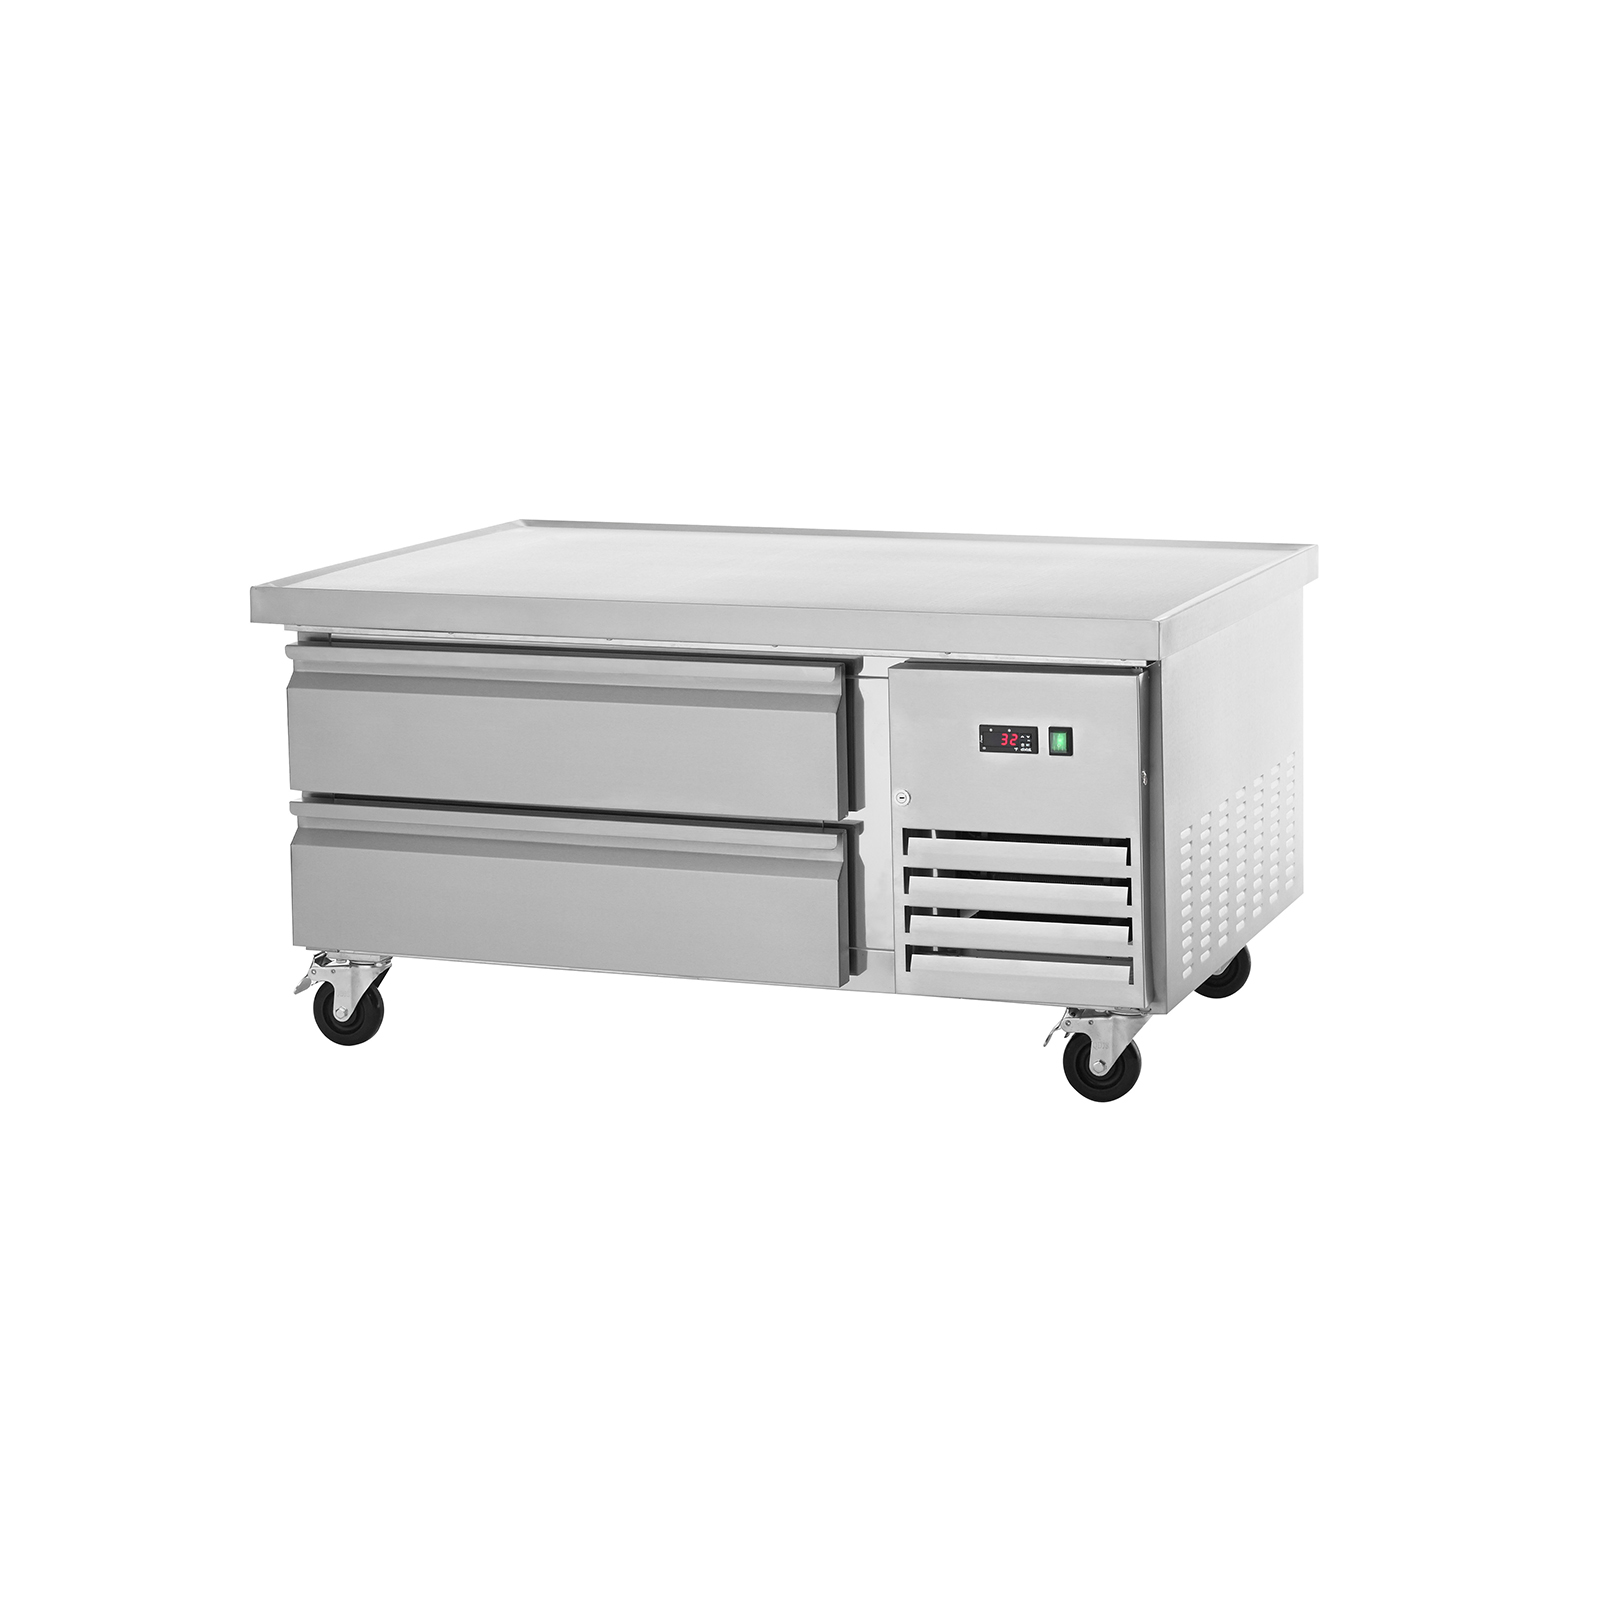 ARCB48 Arctic Air equipment stand, refrigerated base